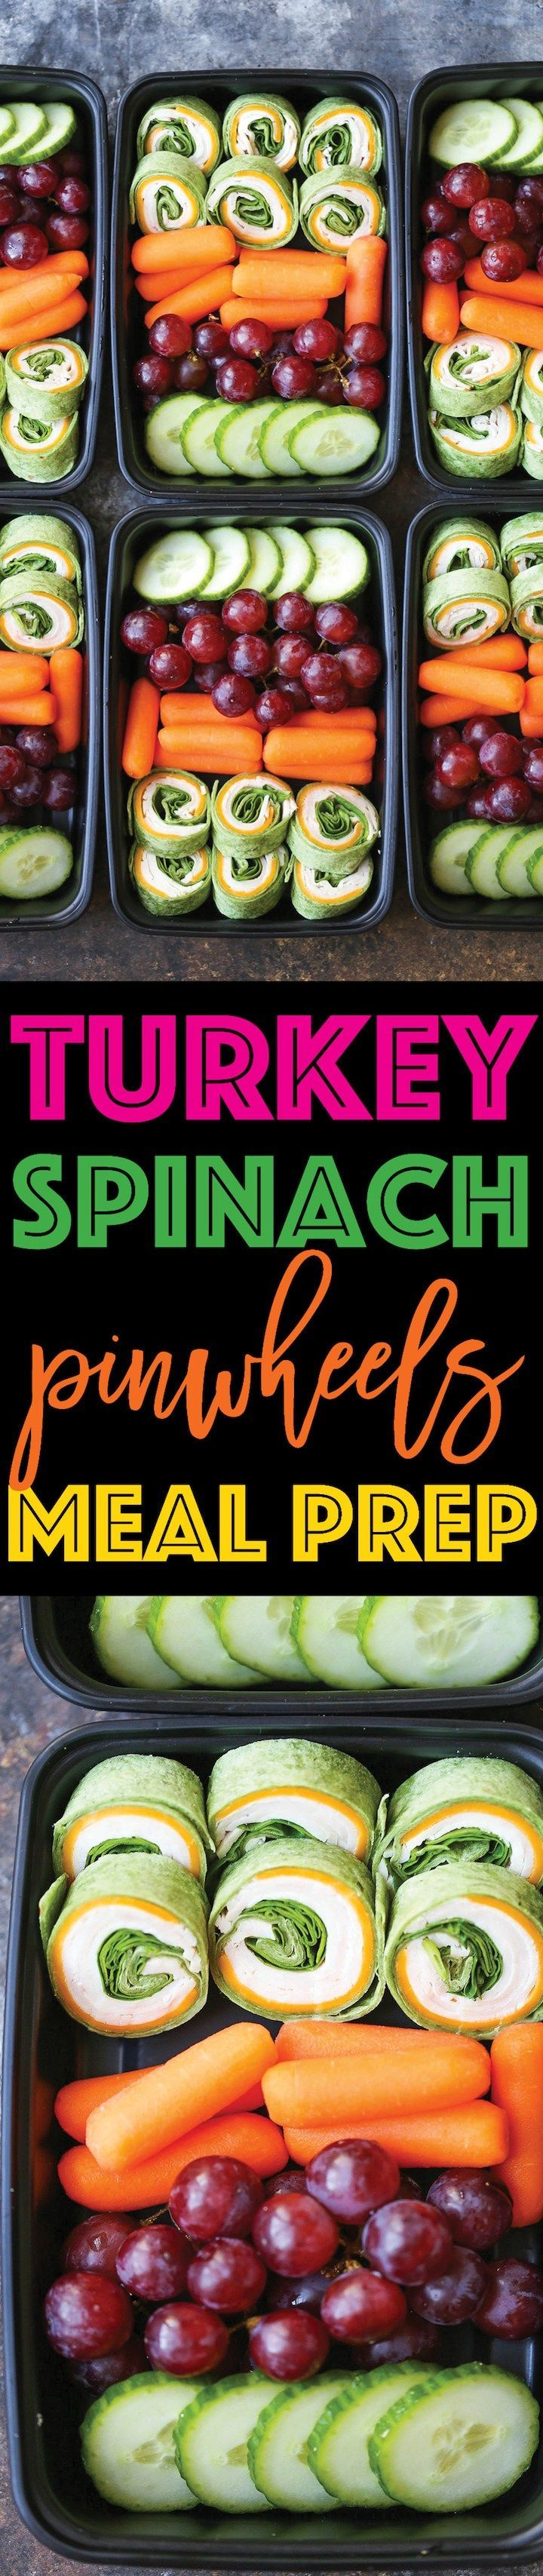 Turkey Spinach Pinwheels Meal Prep